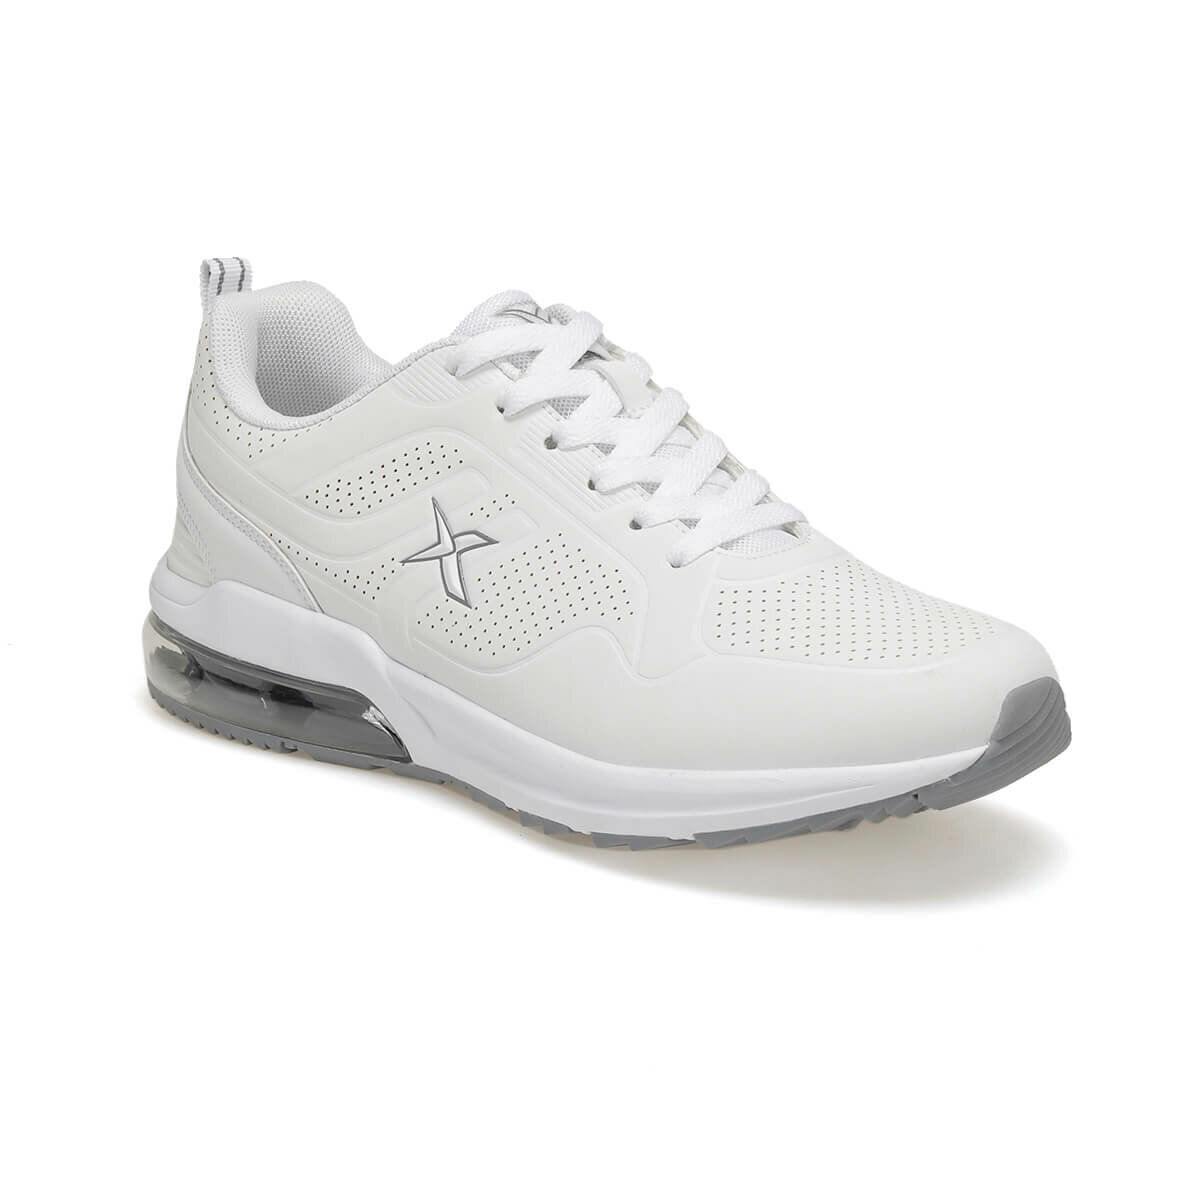 FLO ASPEN M 9PR White Men 'S Sneaker Shoes KINETIX